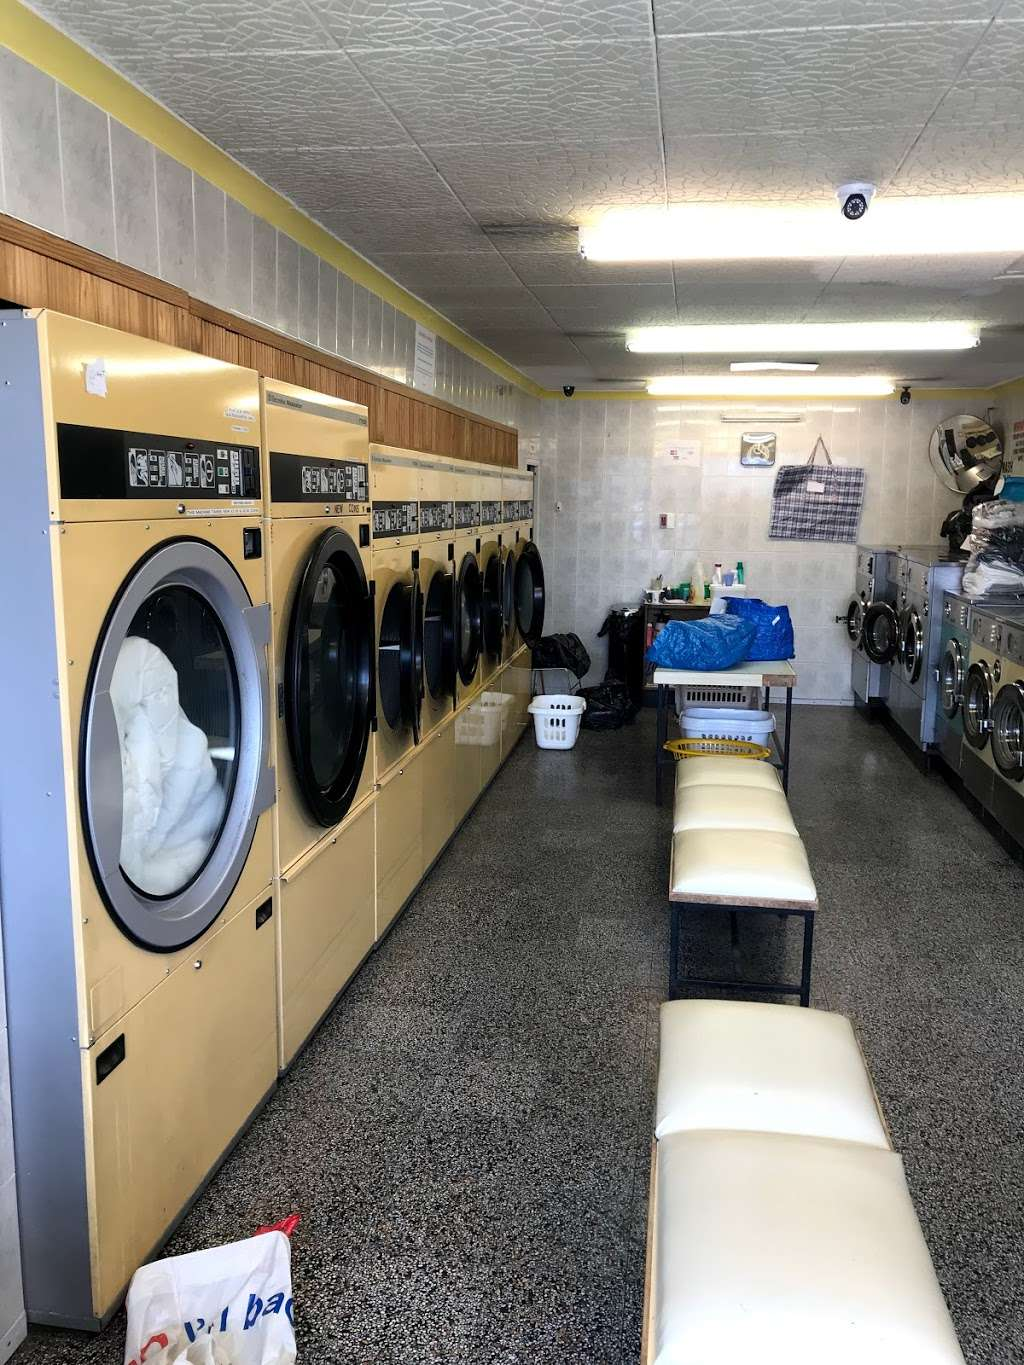 Bubble Brothers Laundrette & Dry Cleaners - laundry  | Photo 8 of 10 | Address: 15 High St, Chipping Ongar, Ongar CM5 9DS, UK | Phone: 01277 364090